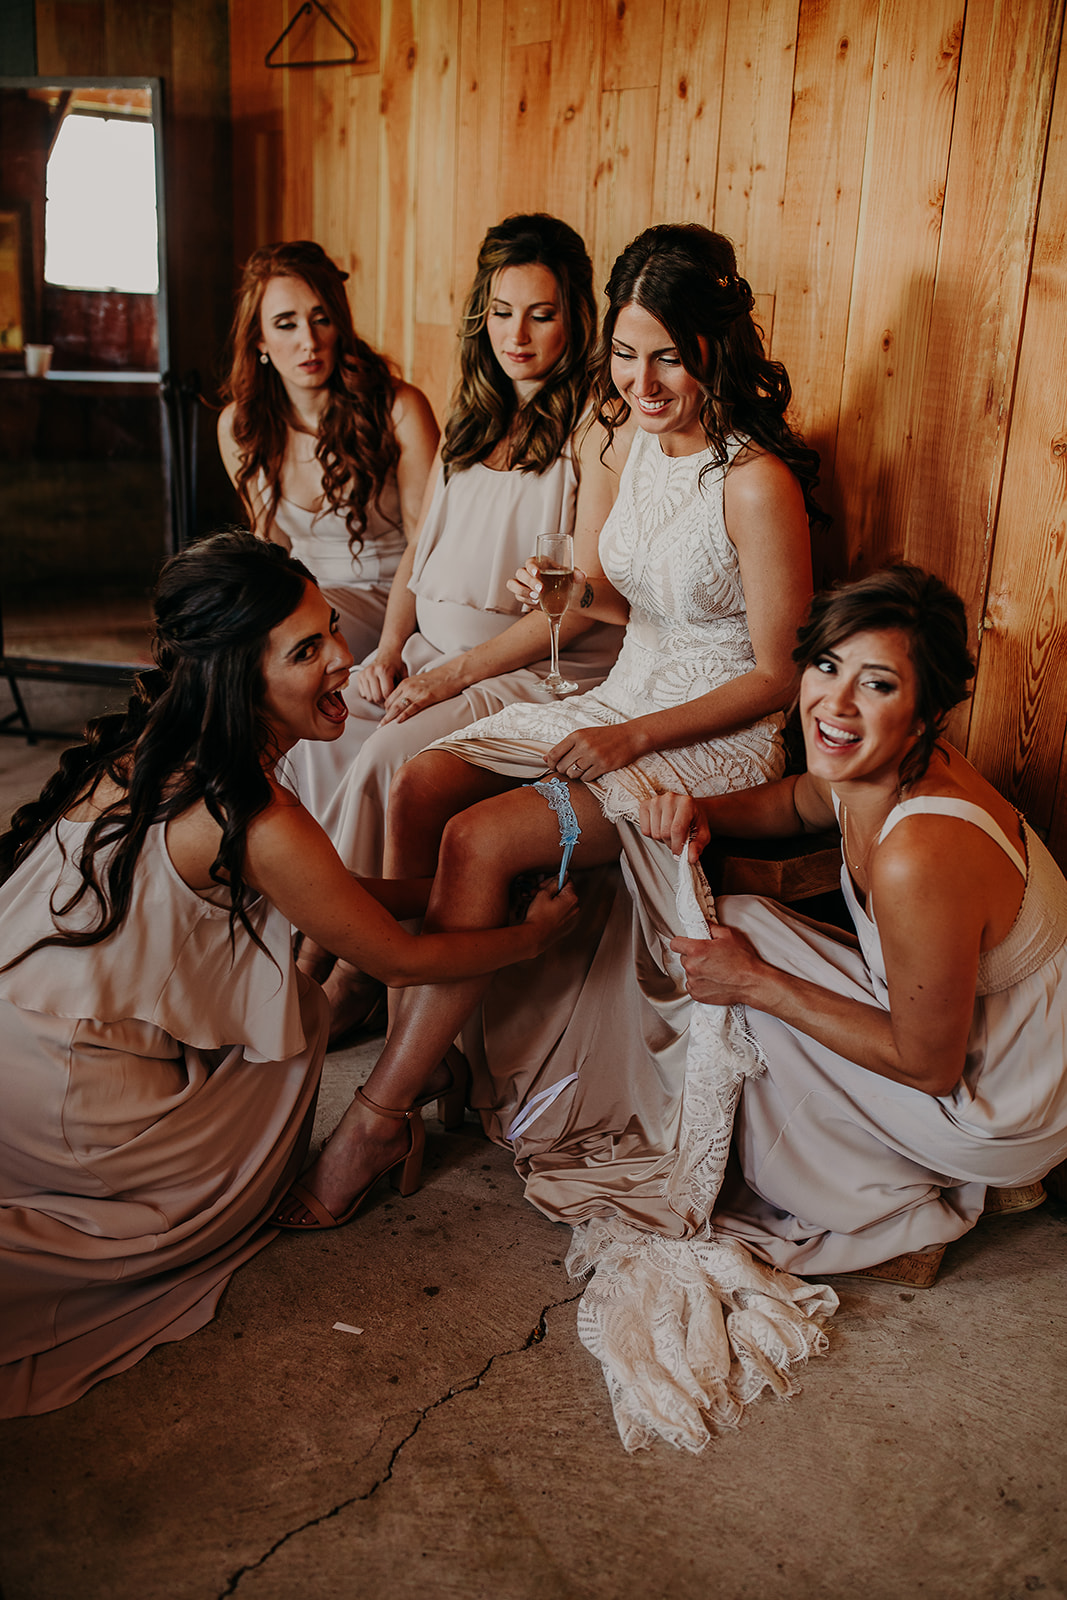 mount-vernon-wedding-salt-box-barn-amanda-riley-megan-gallagher-photography-2_(189_of_215).jpg